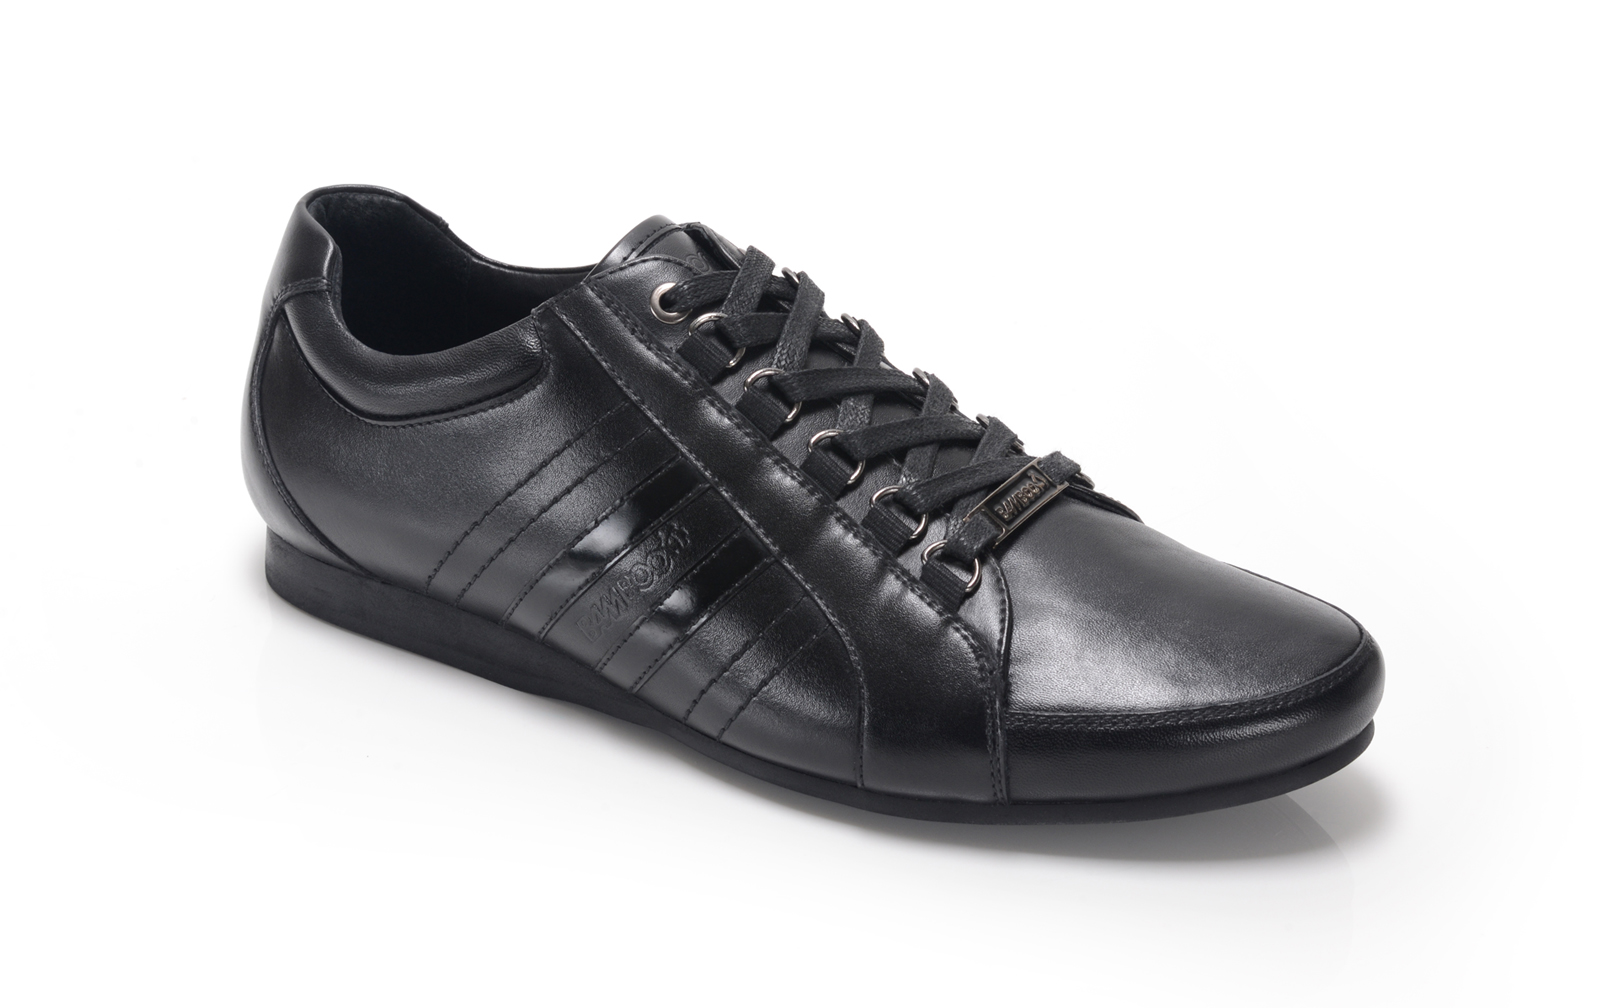 Black Leather Shoes Online